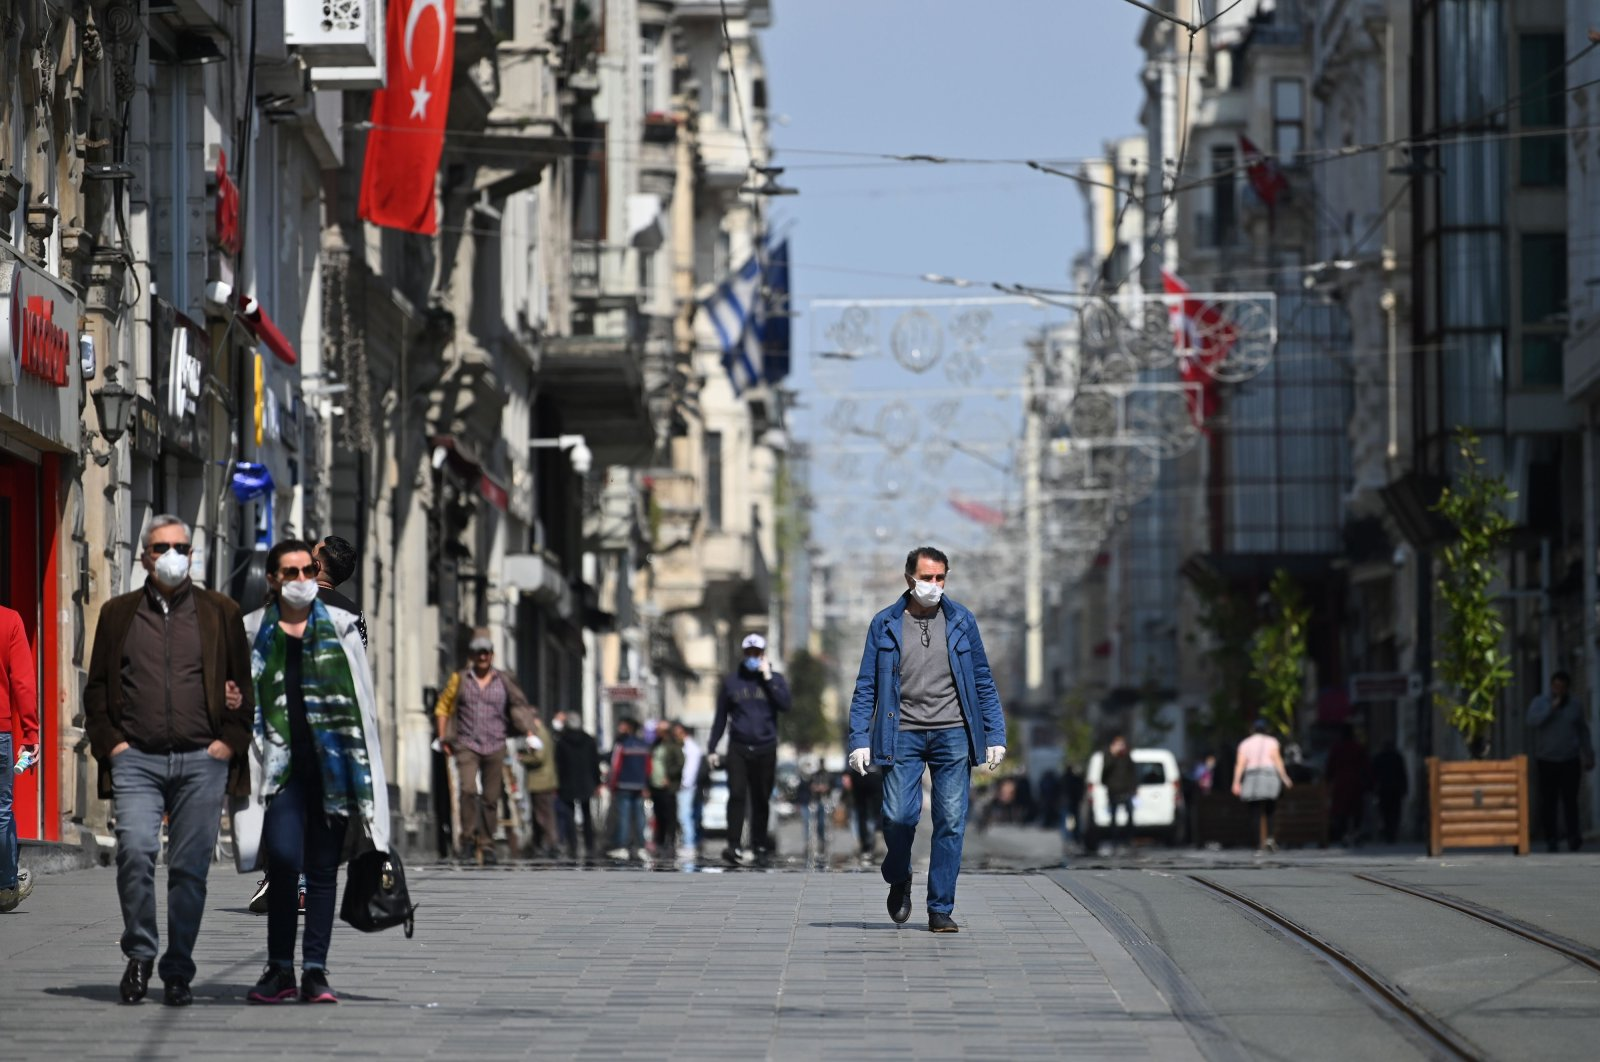 People wear face masks as they walk down İstiklal Avenue in Istanbul, Turkey, April 14, 2020. (AFP Photo)